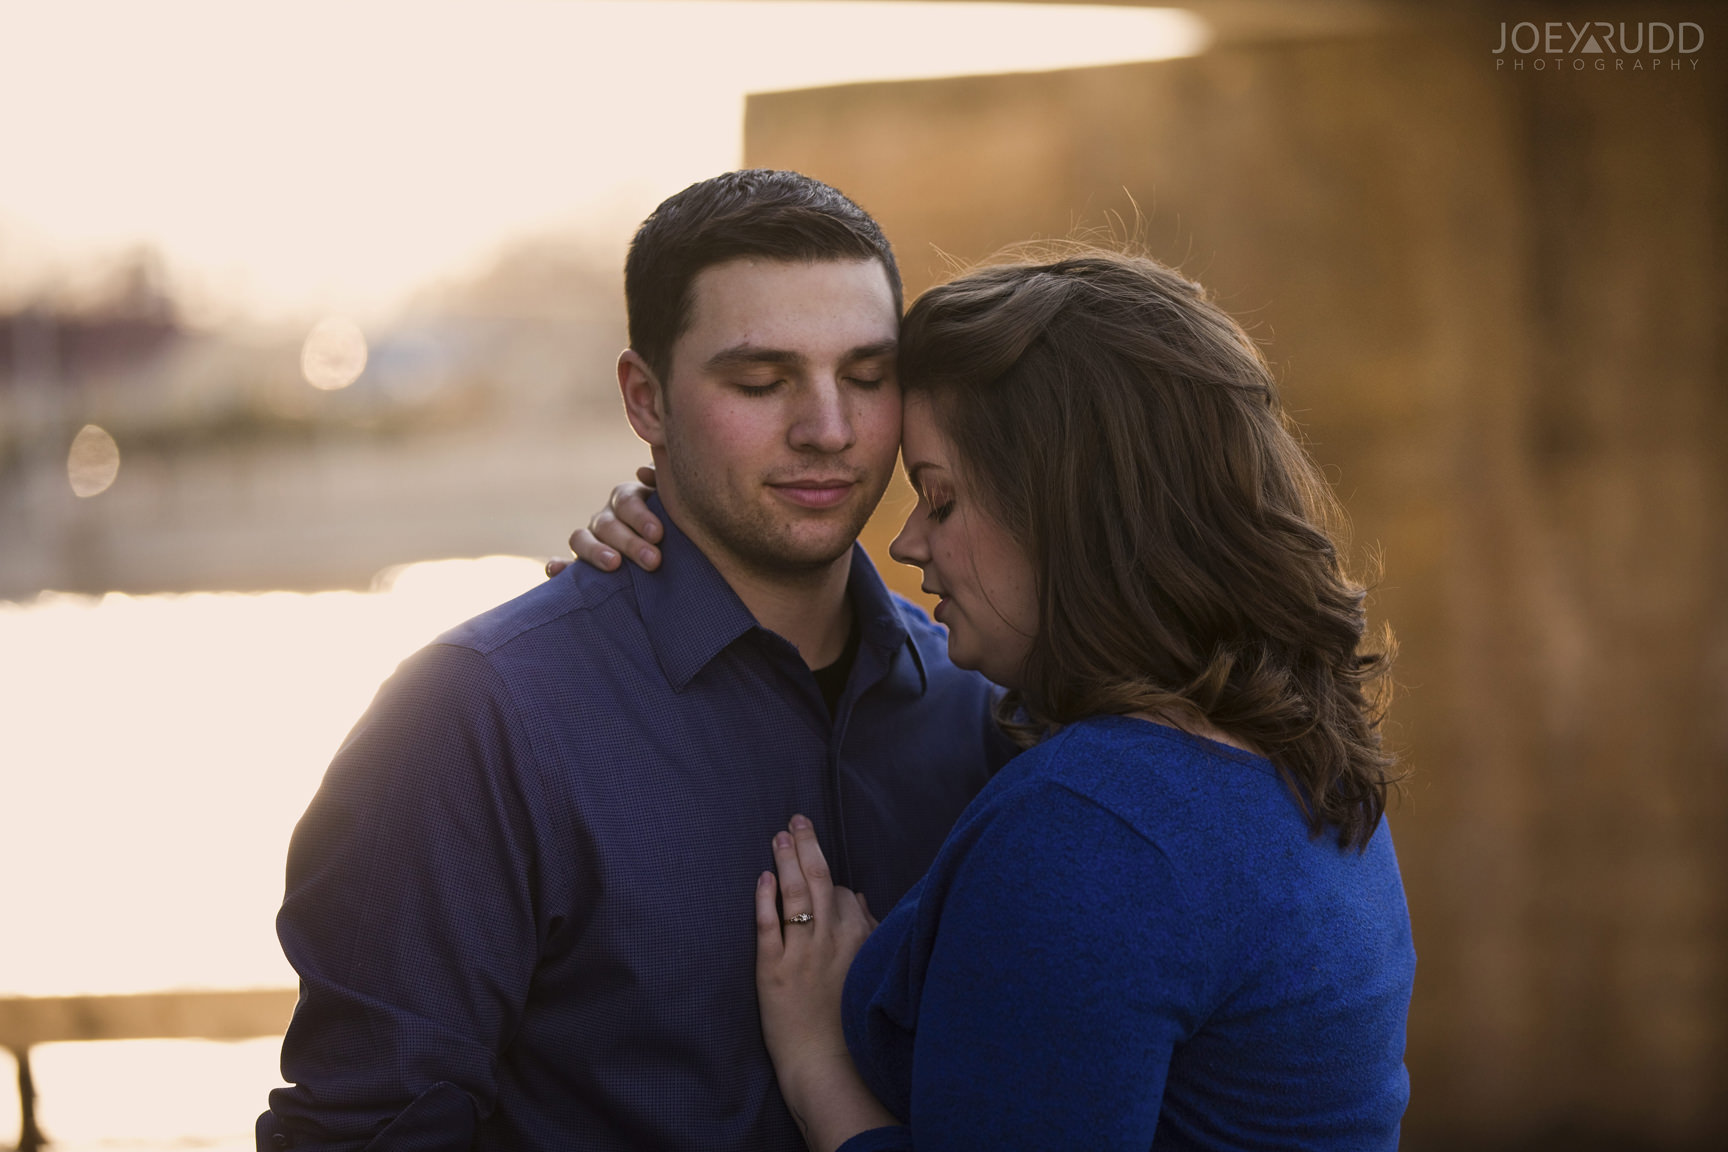 Almonte engagement photography by ottawa wedding photographer joey rudd photography evening light